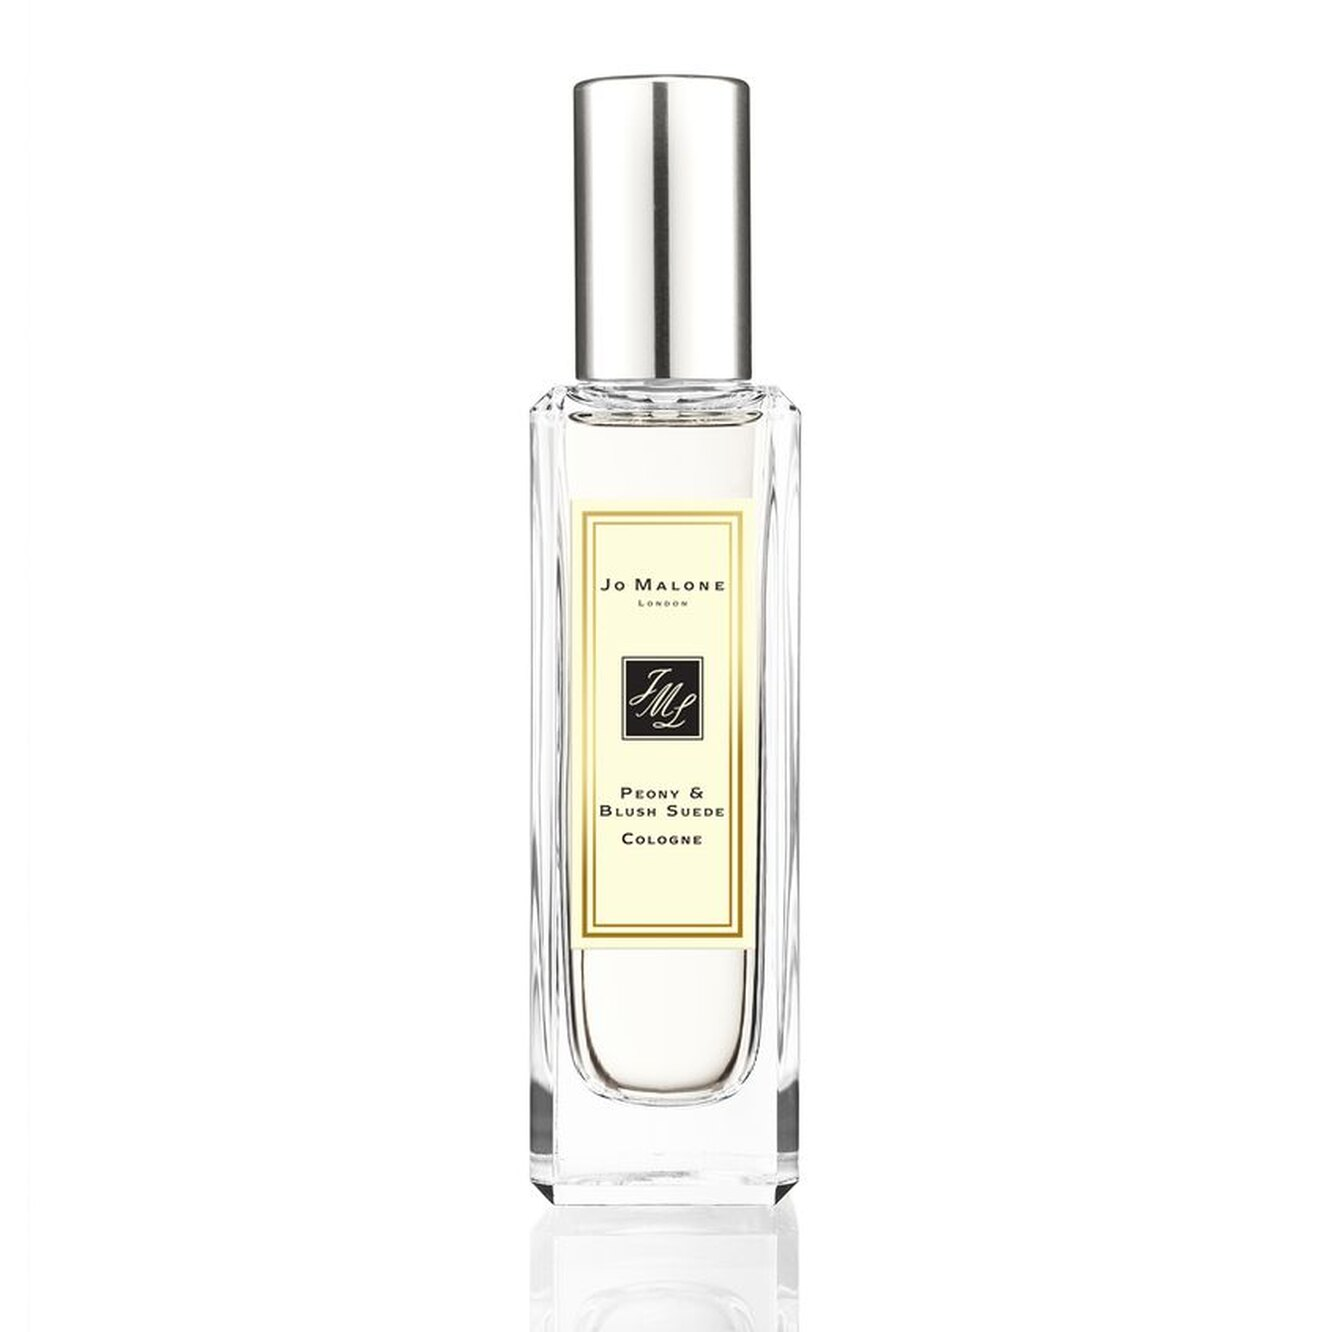 Peony & Blush Suede Cologne, Jo Malone London, 4100 руб.